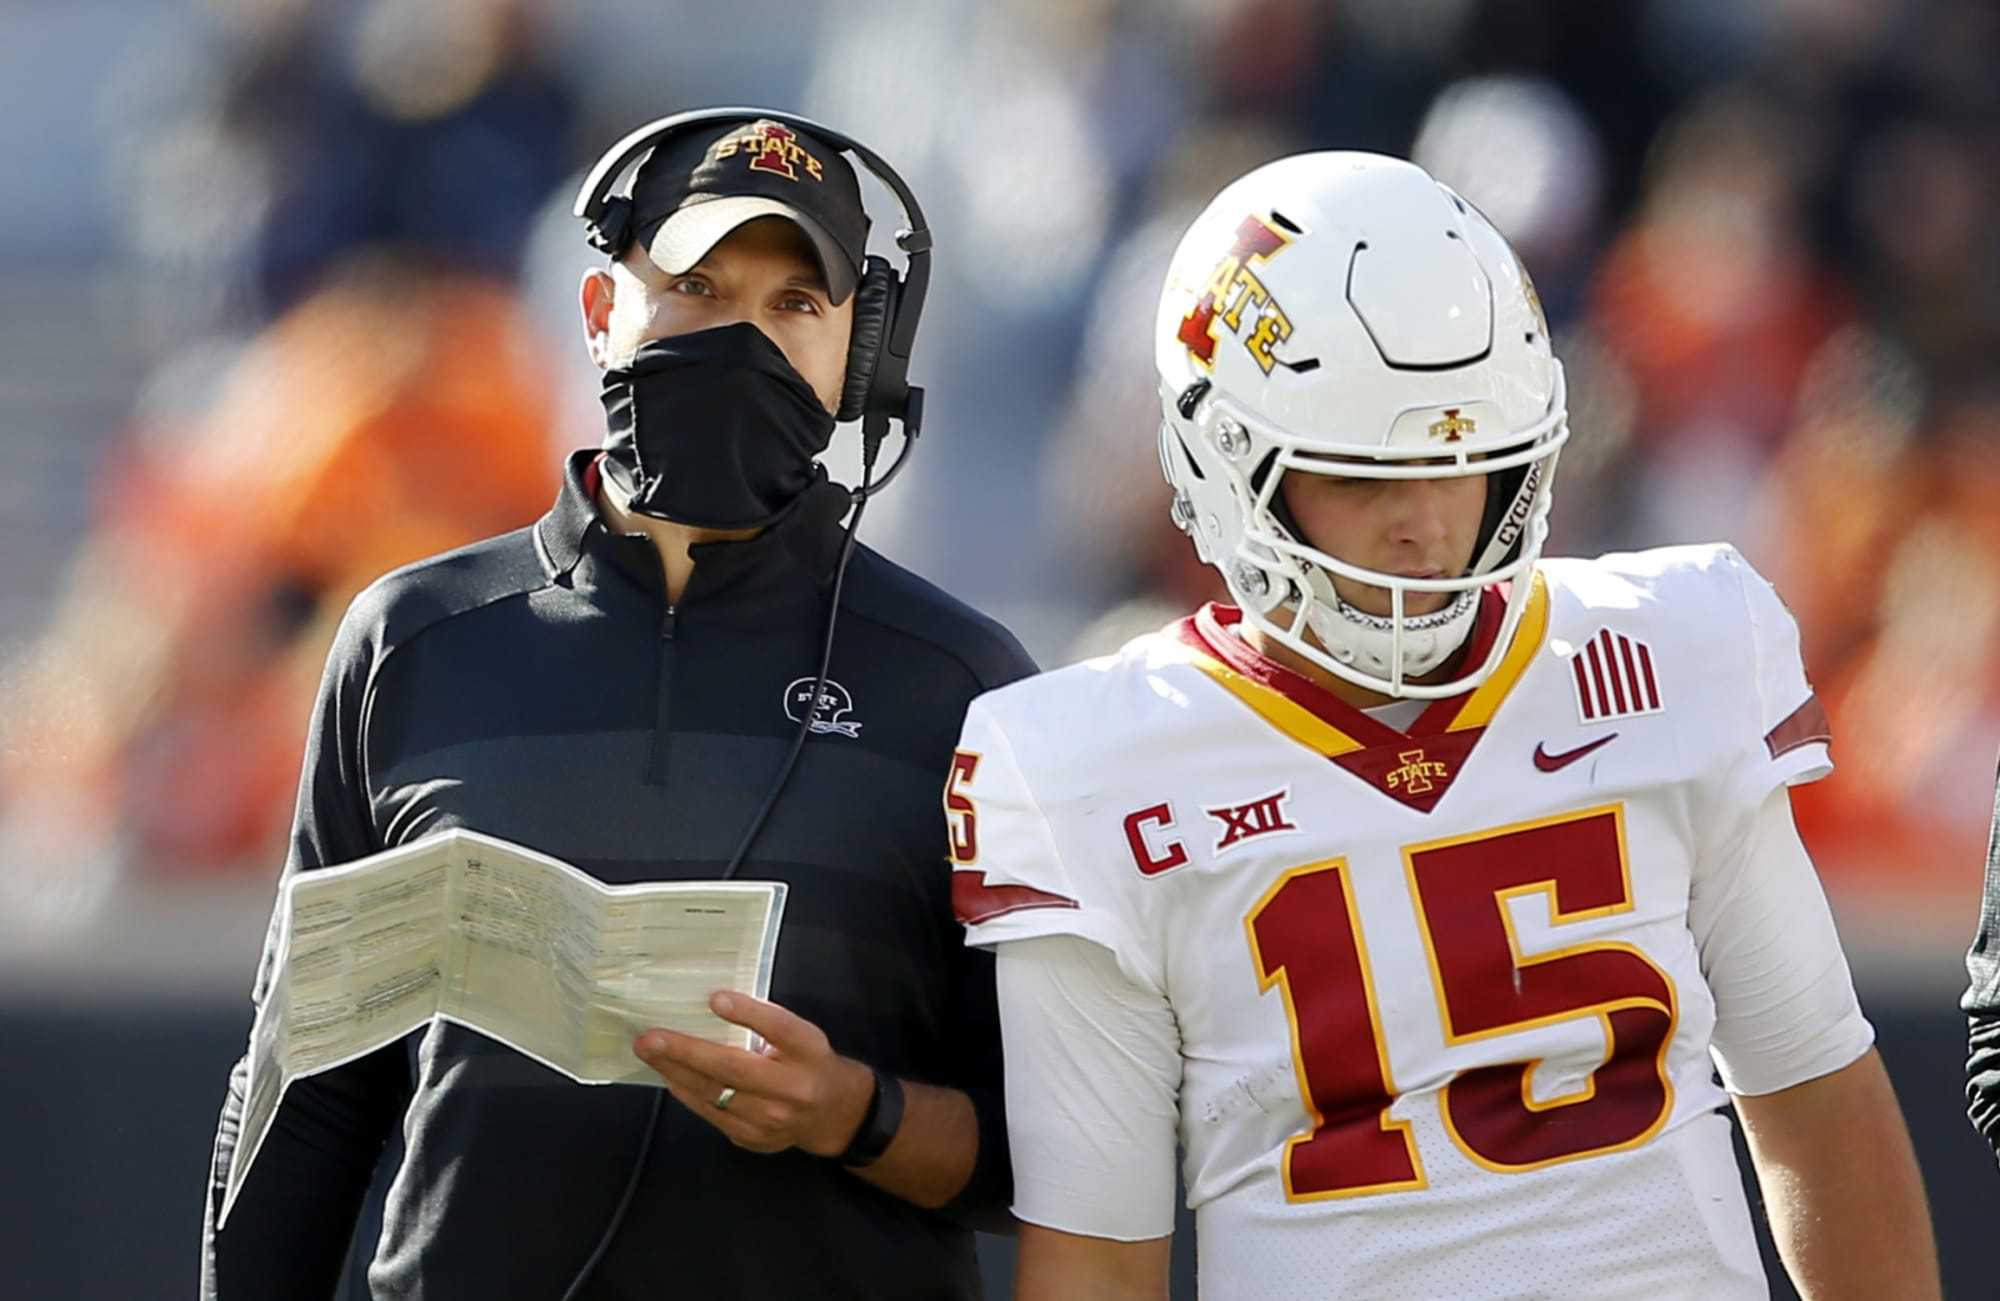 Iowa State Football: Why Cyclones aren't a national title contender